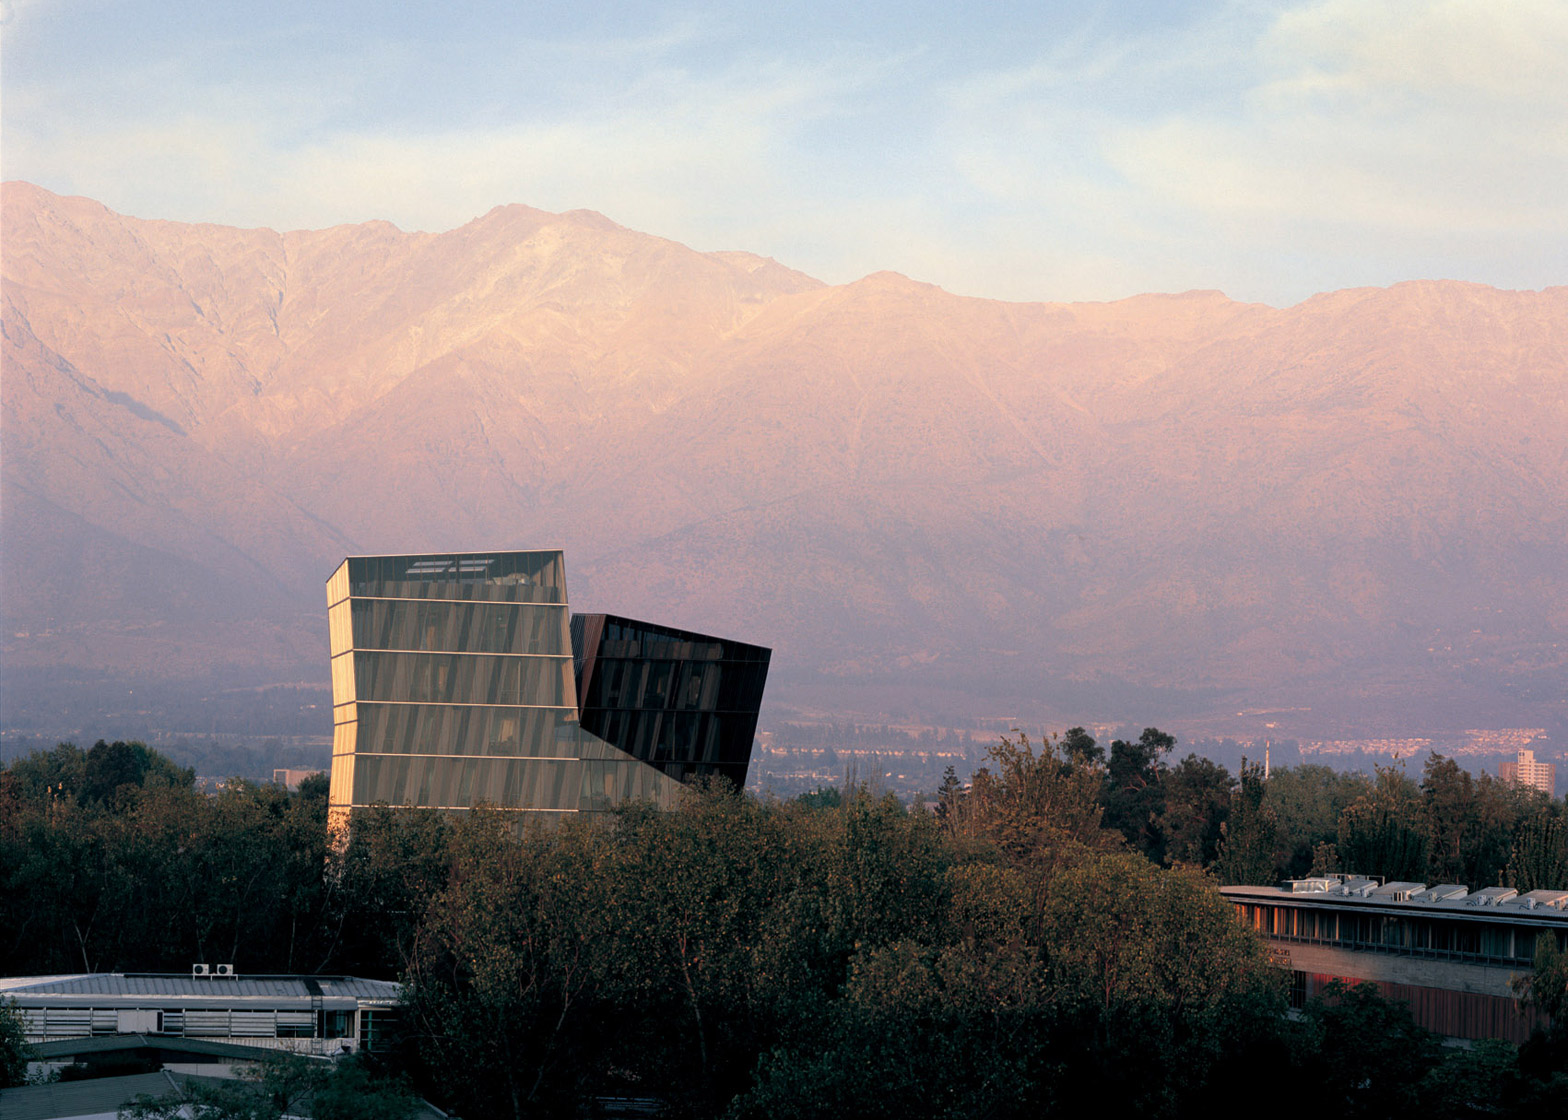 Siamese Towers at the San Joaquín Campus, Universidad Católica de Chile, Santiago, 2005